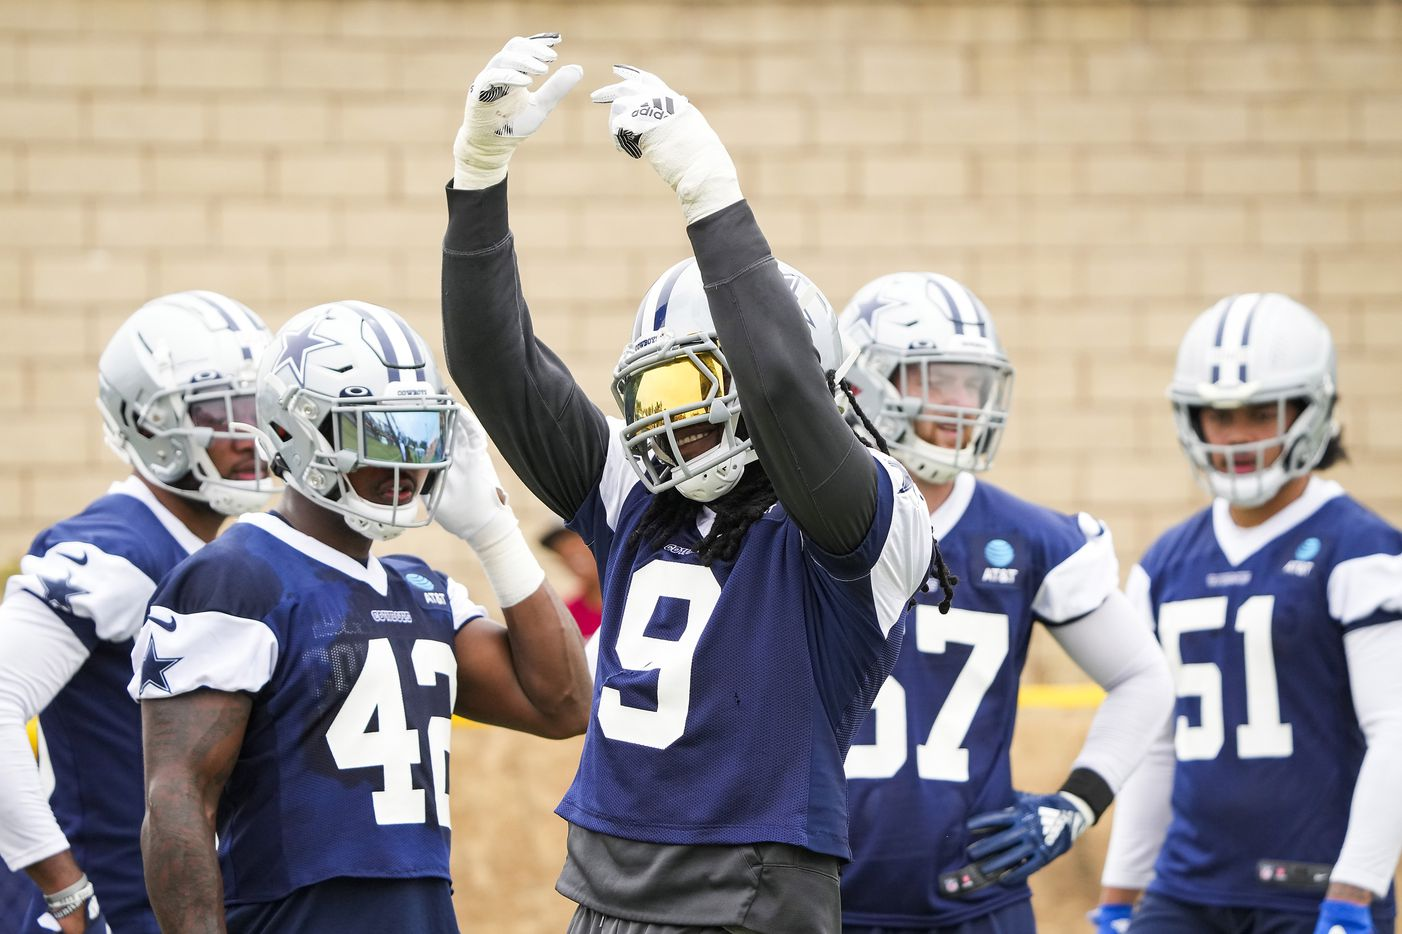 Dallas Cowboys linebacker Jaylon Smith (9) tries to fire up the crowd during a practice at training camp on Sunday, July 25, 2021, in Oxnard, Calif.